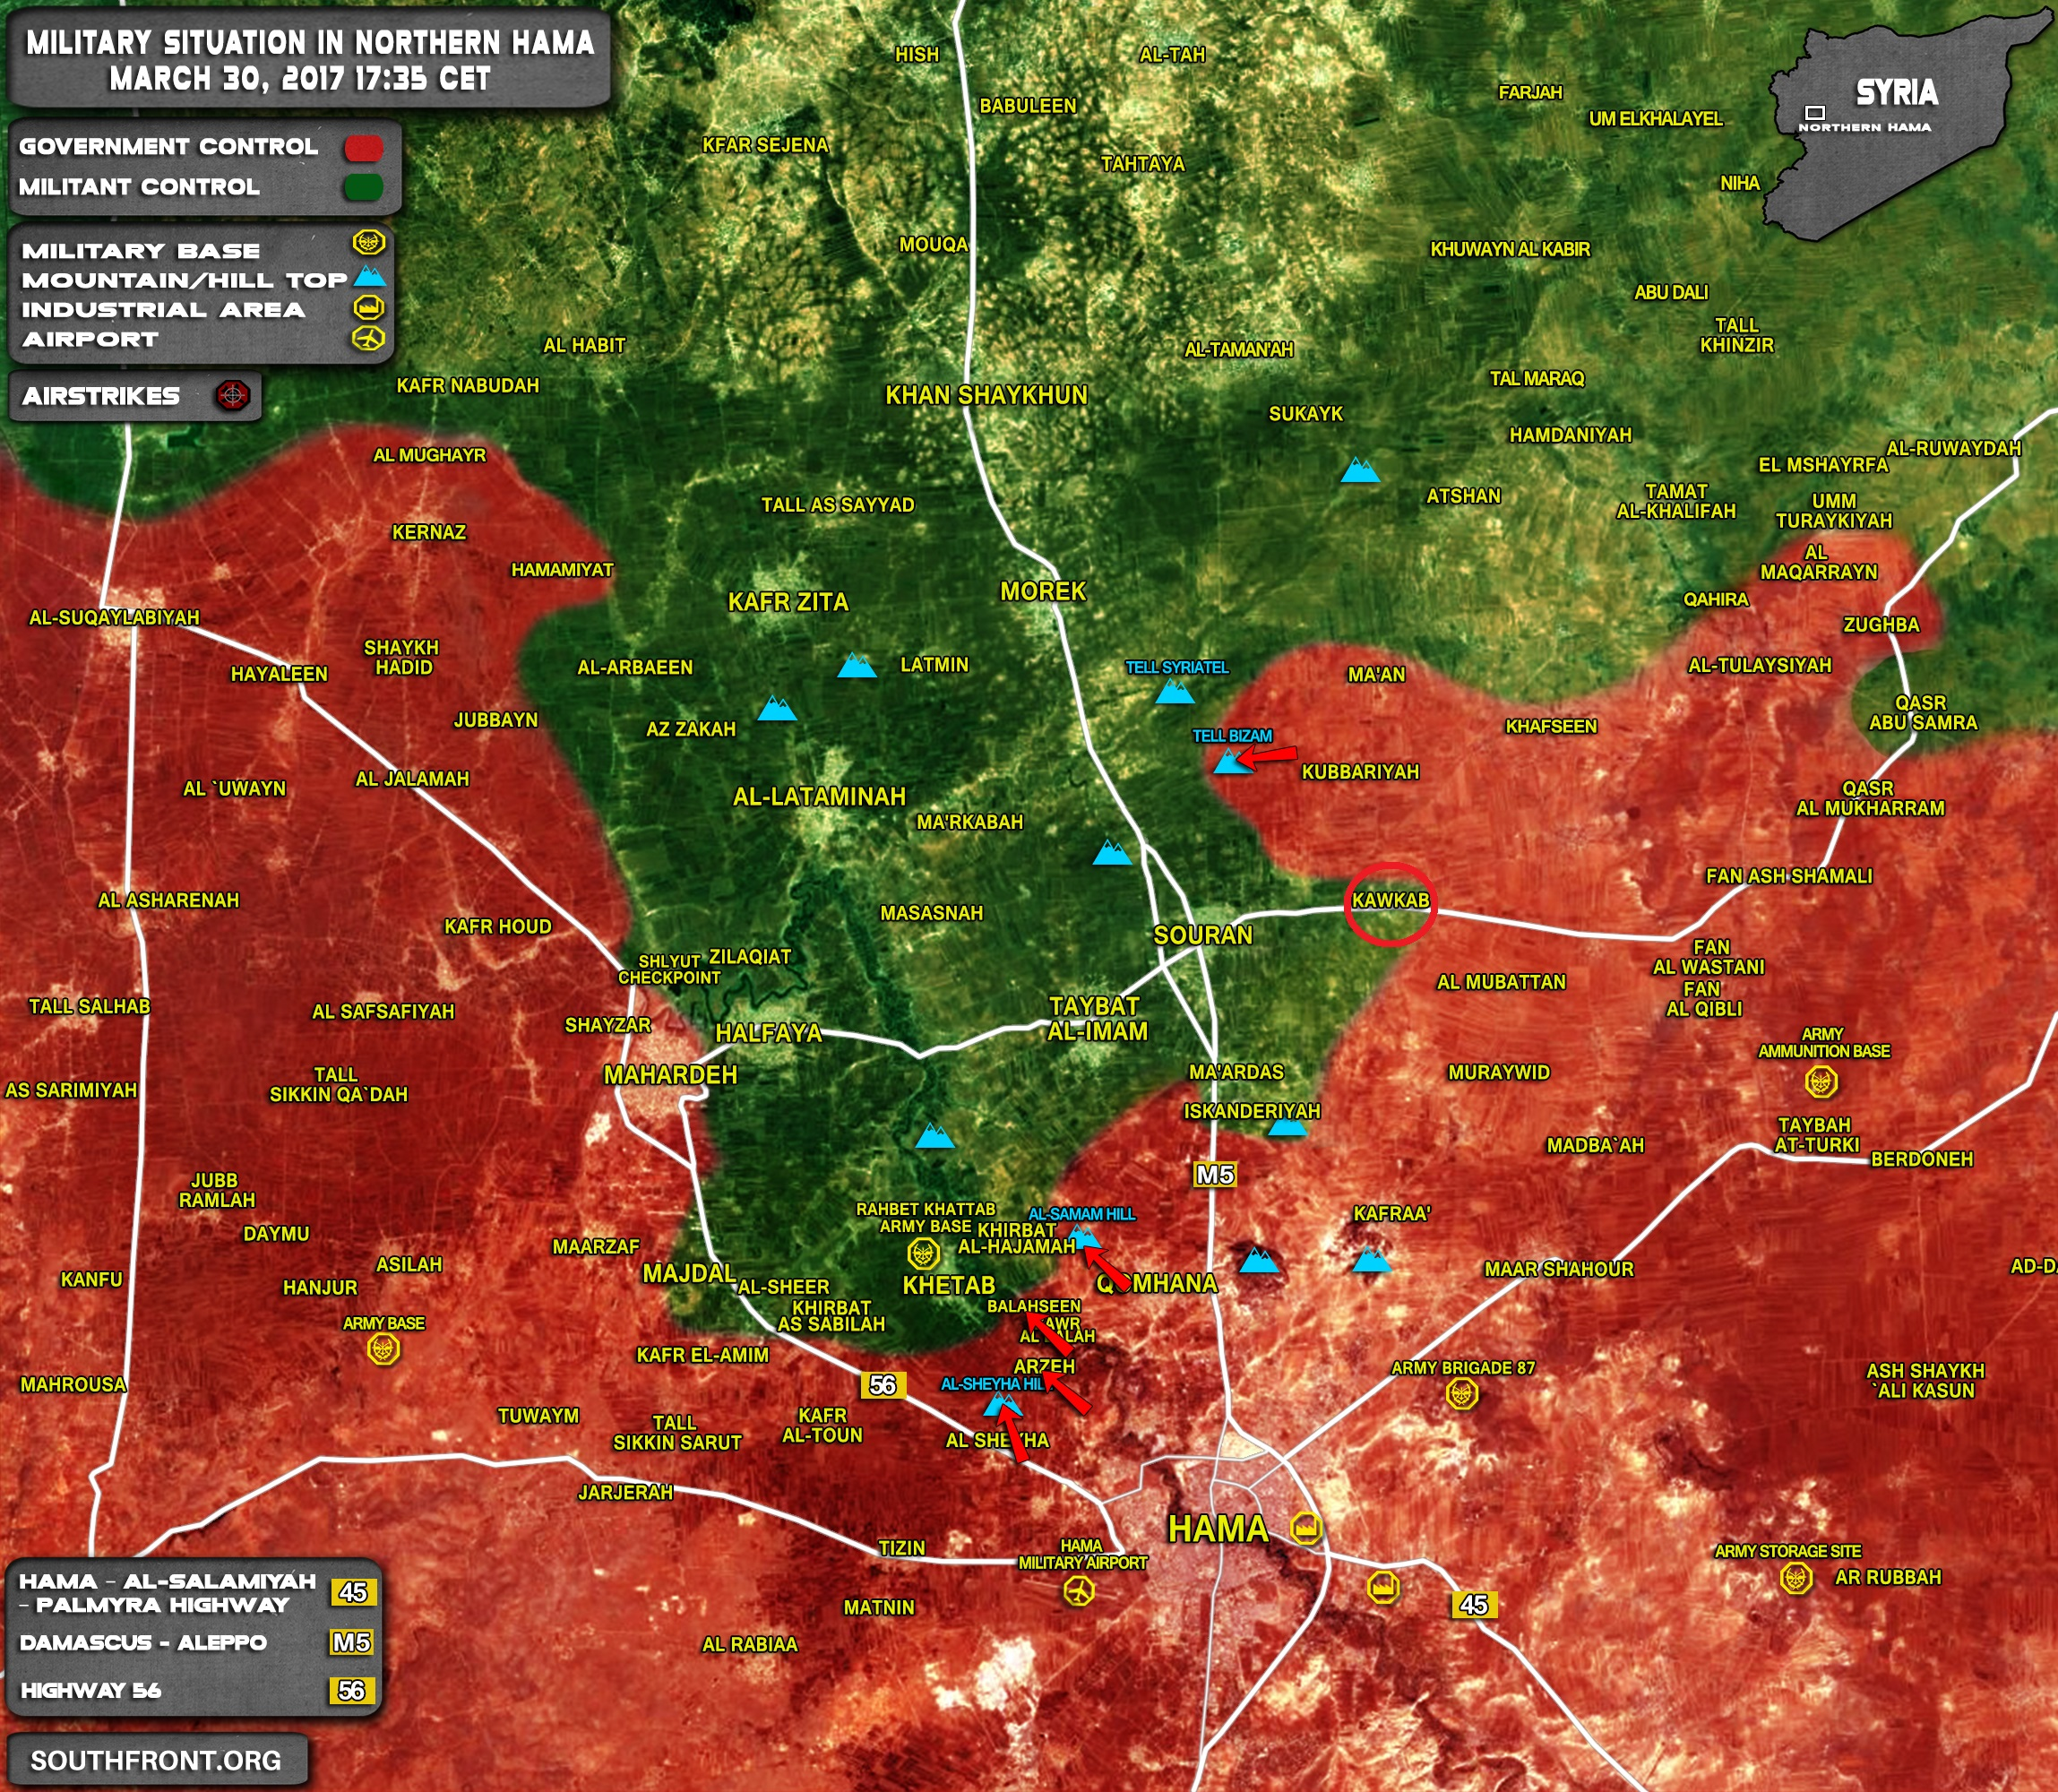 Military Situation In Northern Hama On March 30, 2017 (Syria Map)